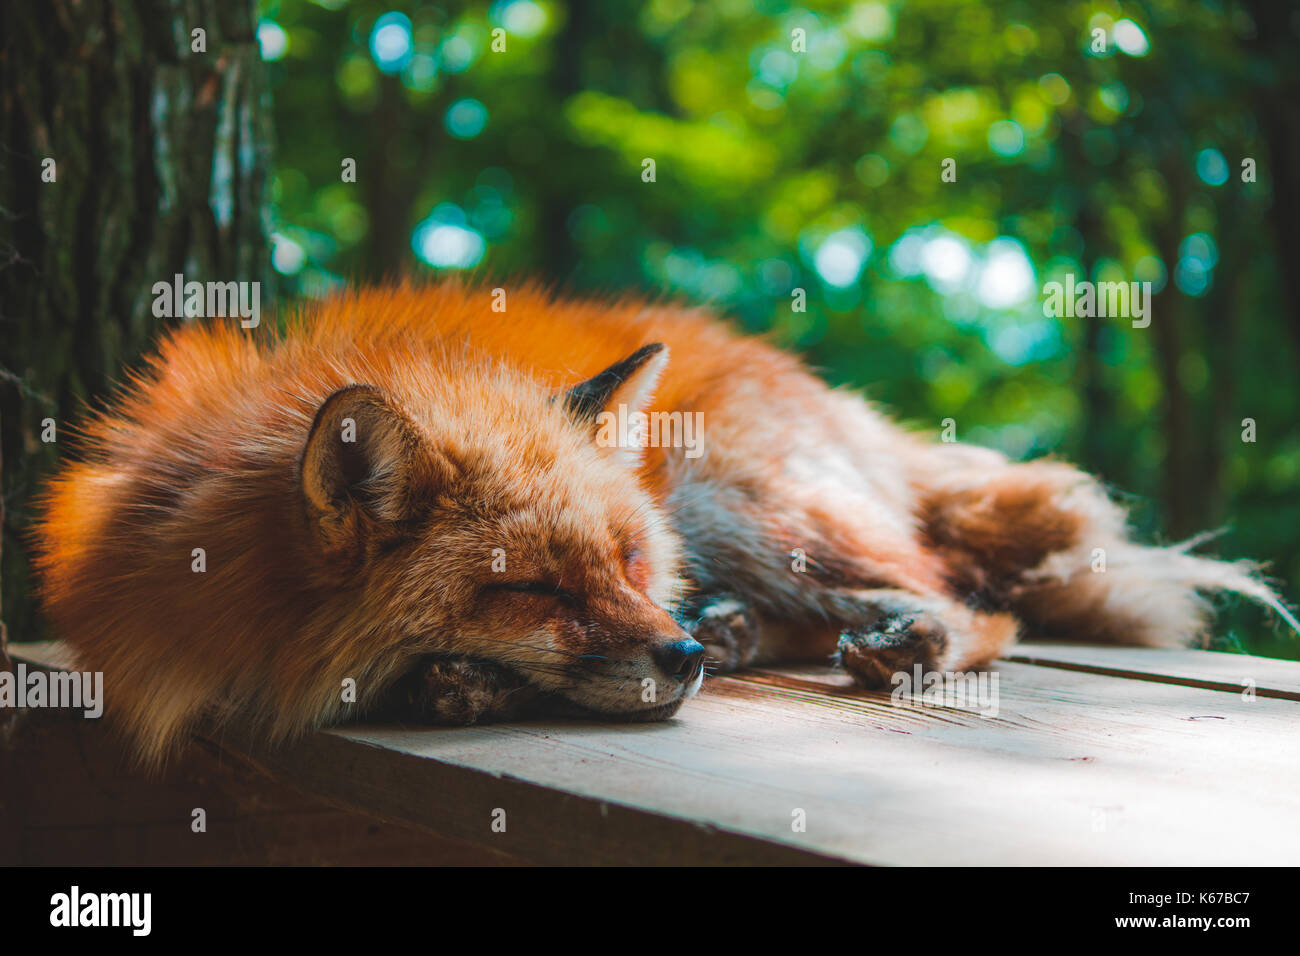 colorful-close-up-shot-of-extremely-cute-and-relaxed-sleeping-fox-K67BC7.jpg